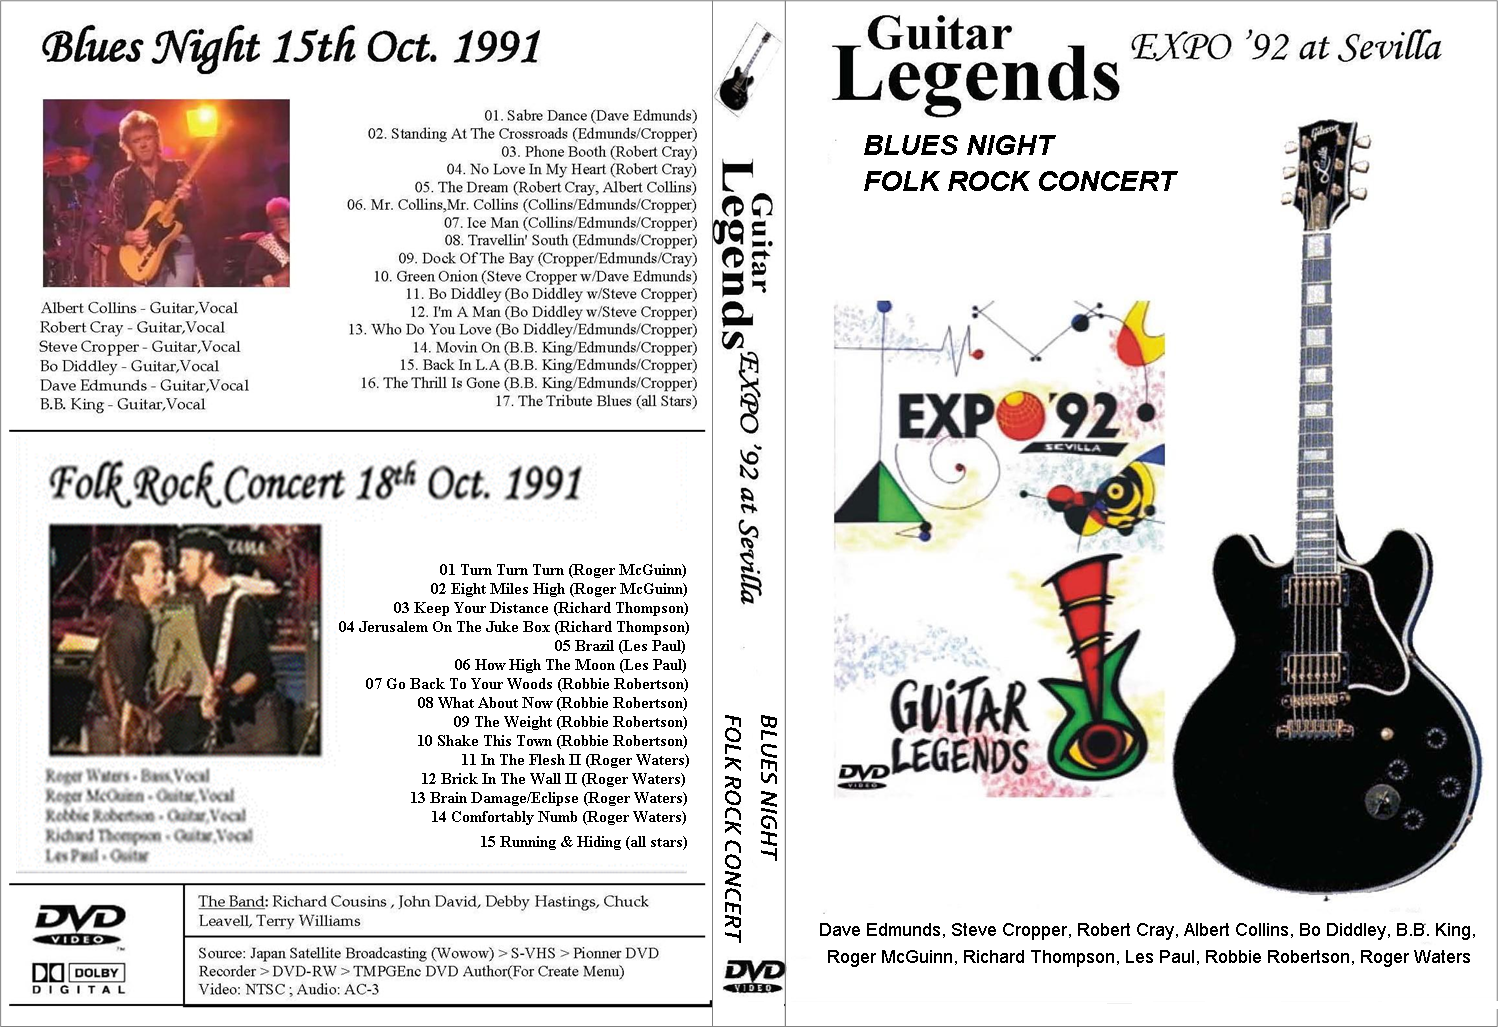 2011 Guitar Legends Of Rock And Blues Dates